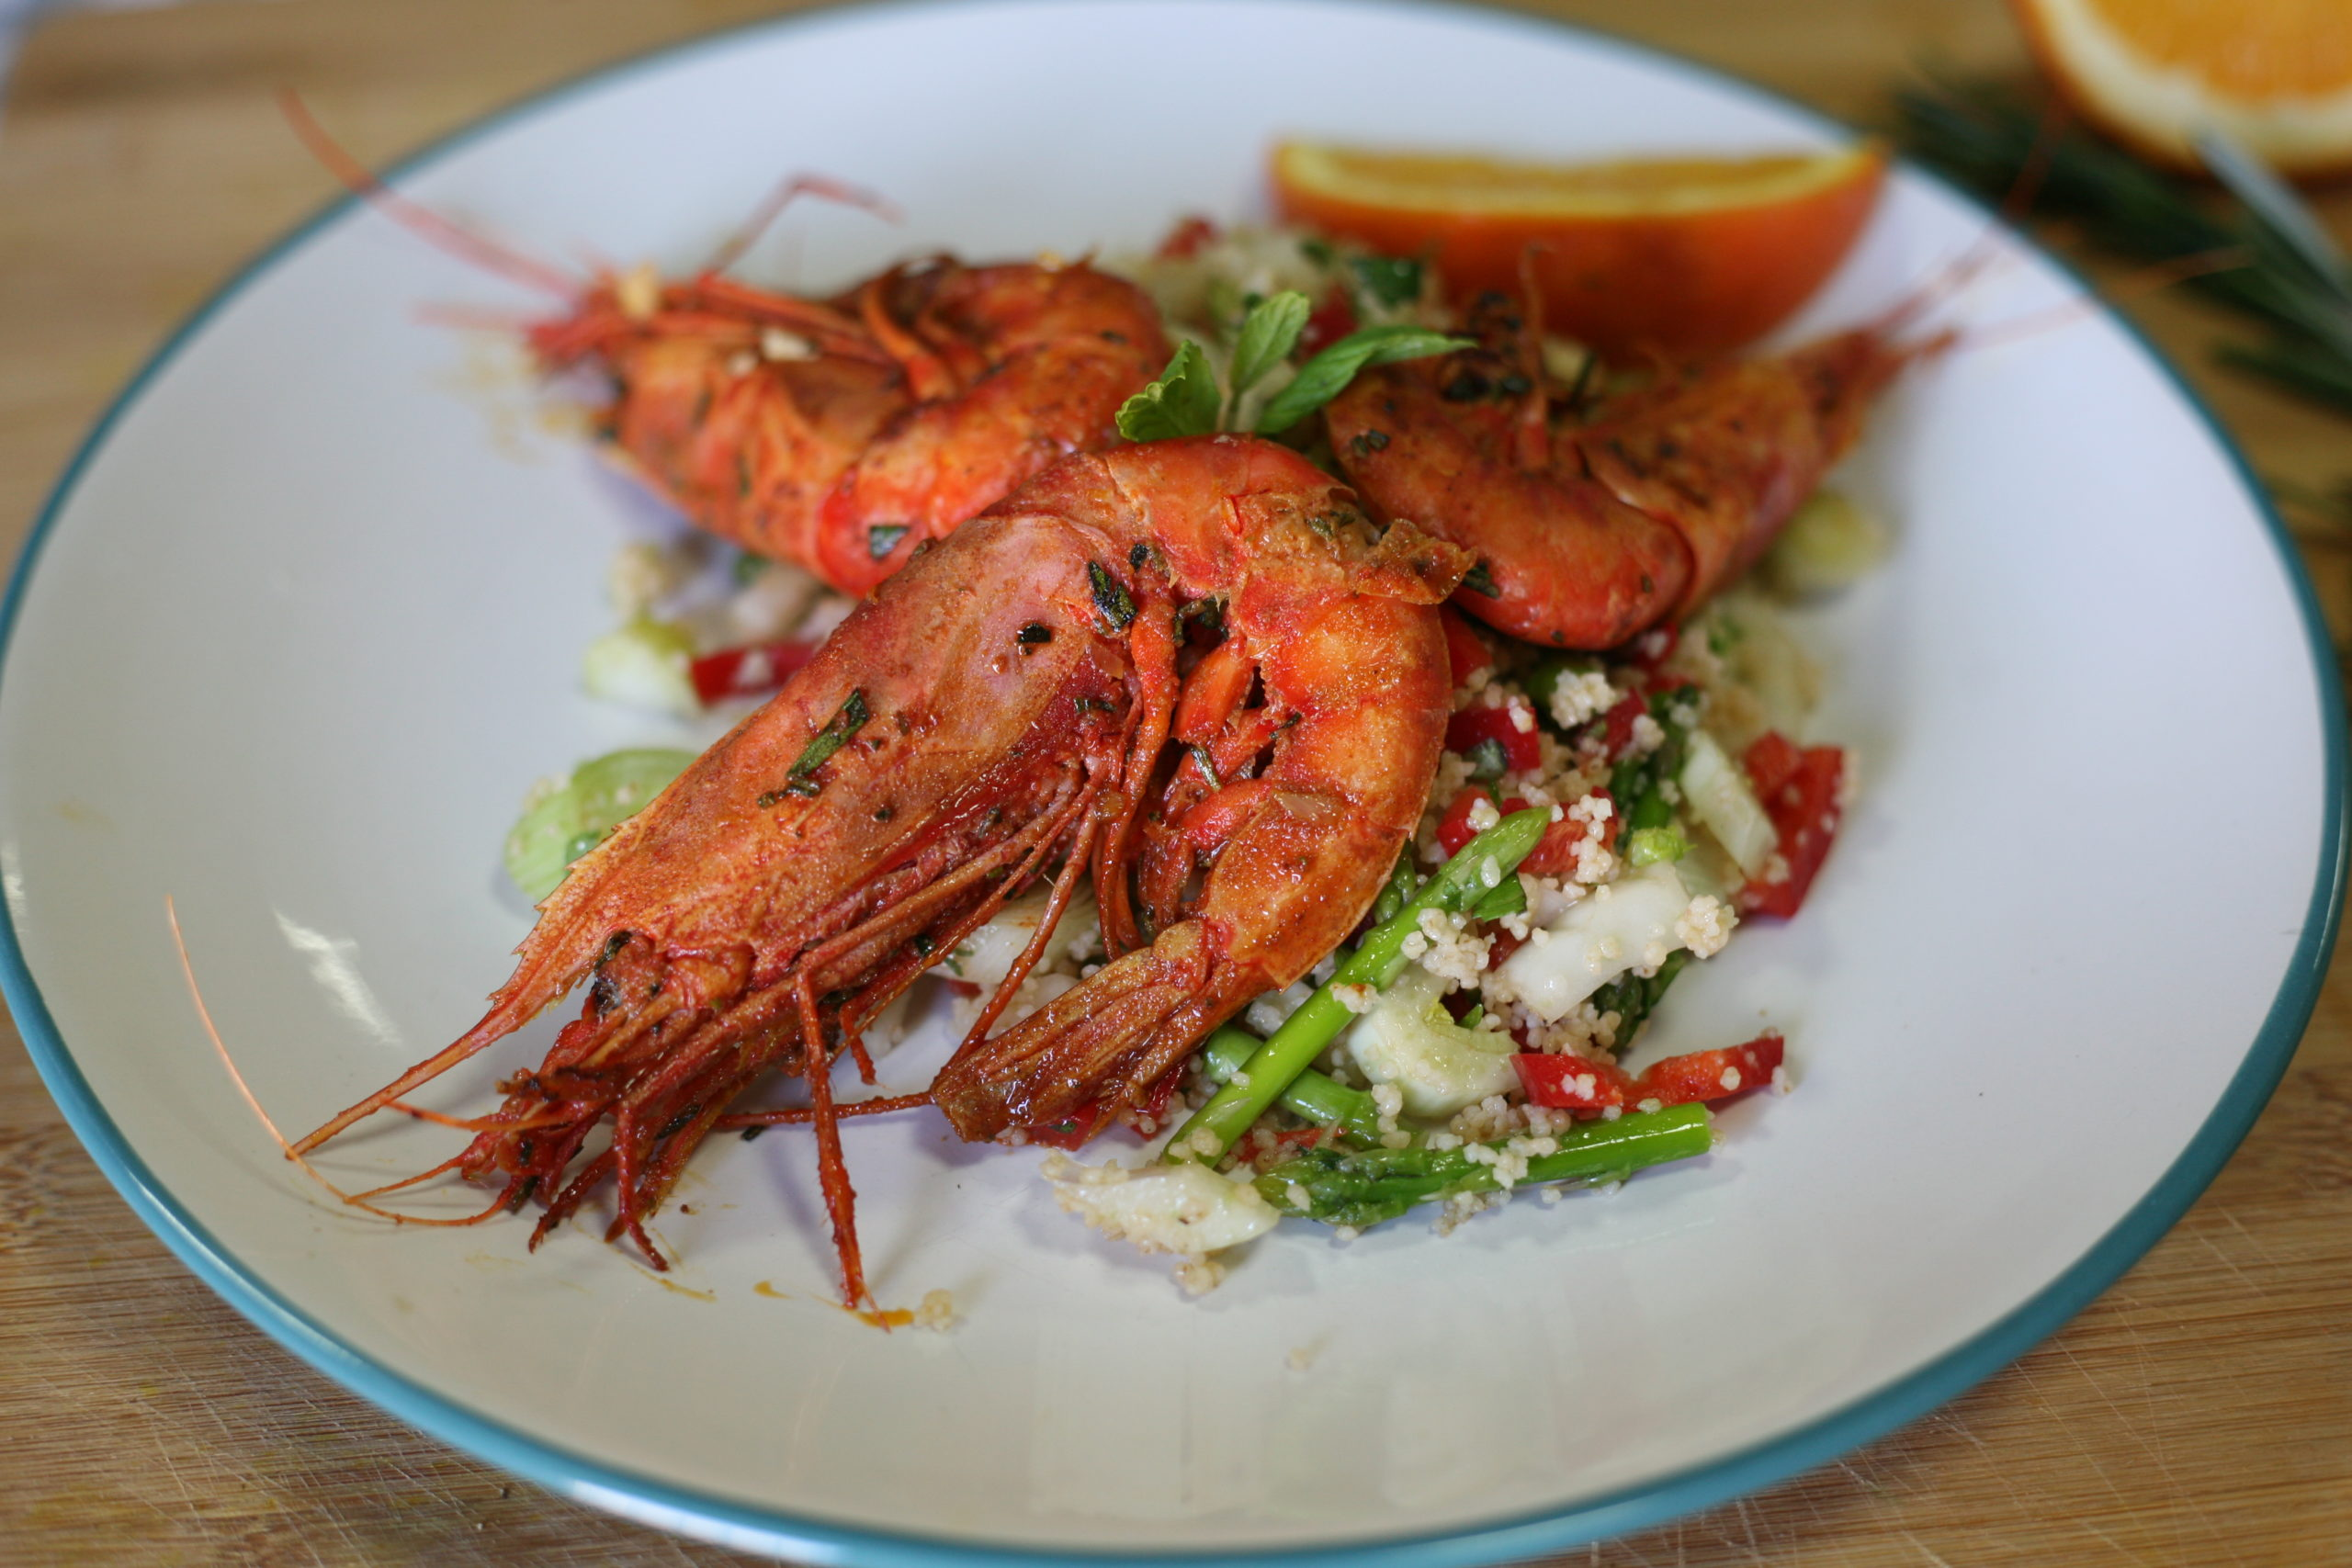 Rosemary and orange prawns